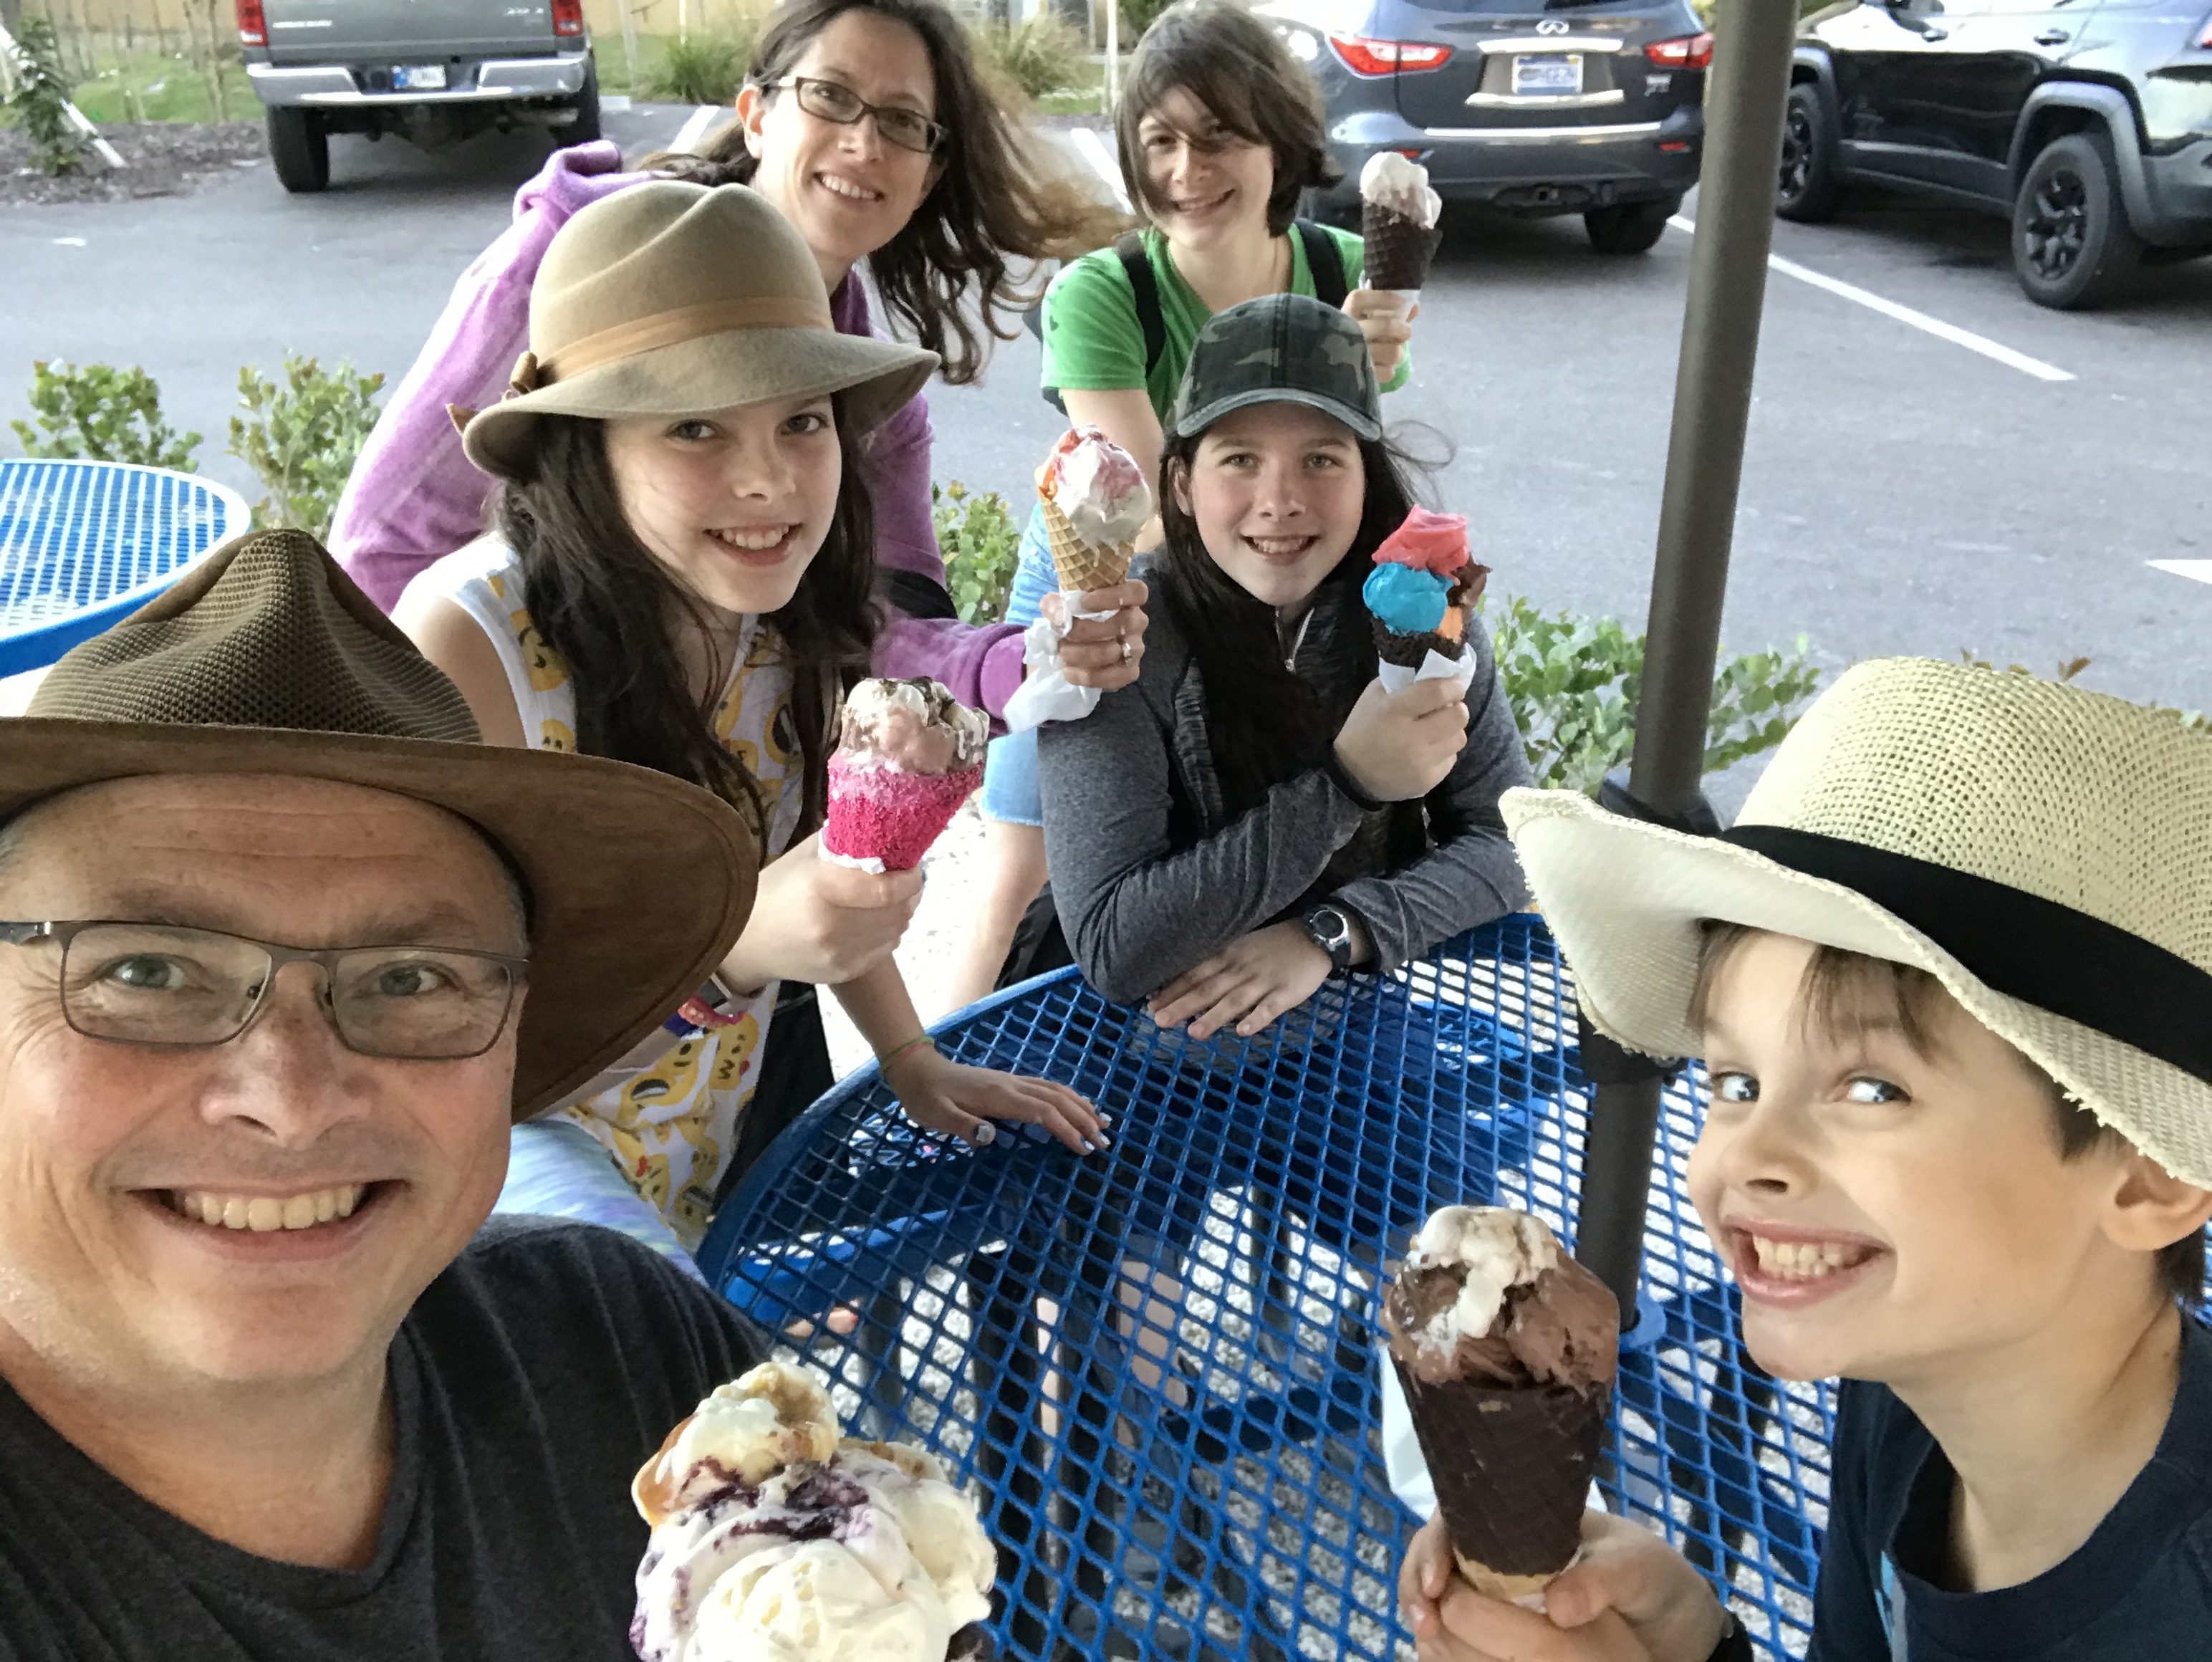 We took a picture to celebrate this special moment where we all got way to much ice cream and ate it all. 